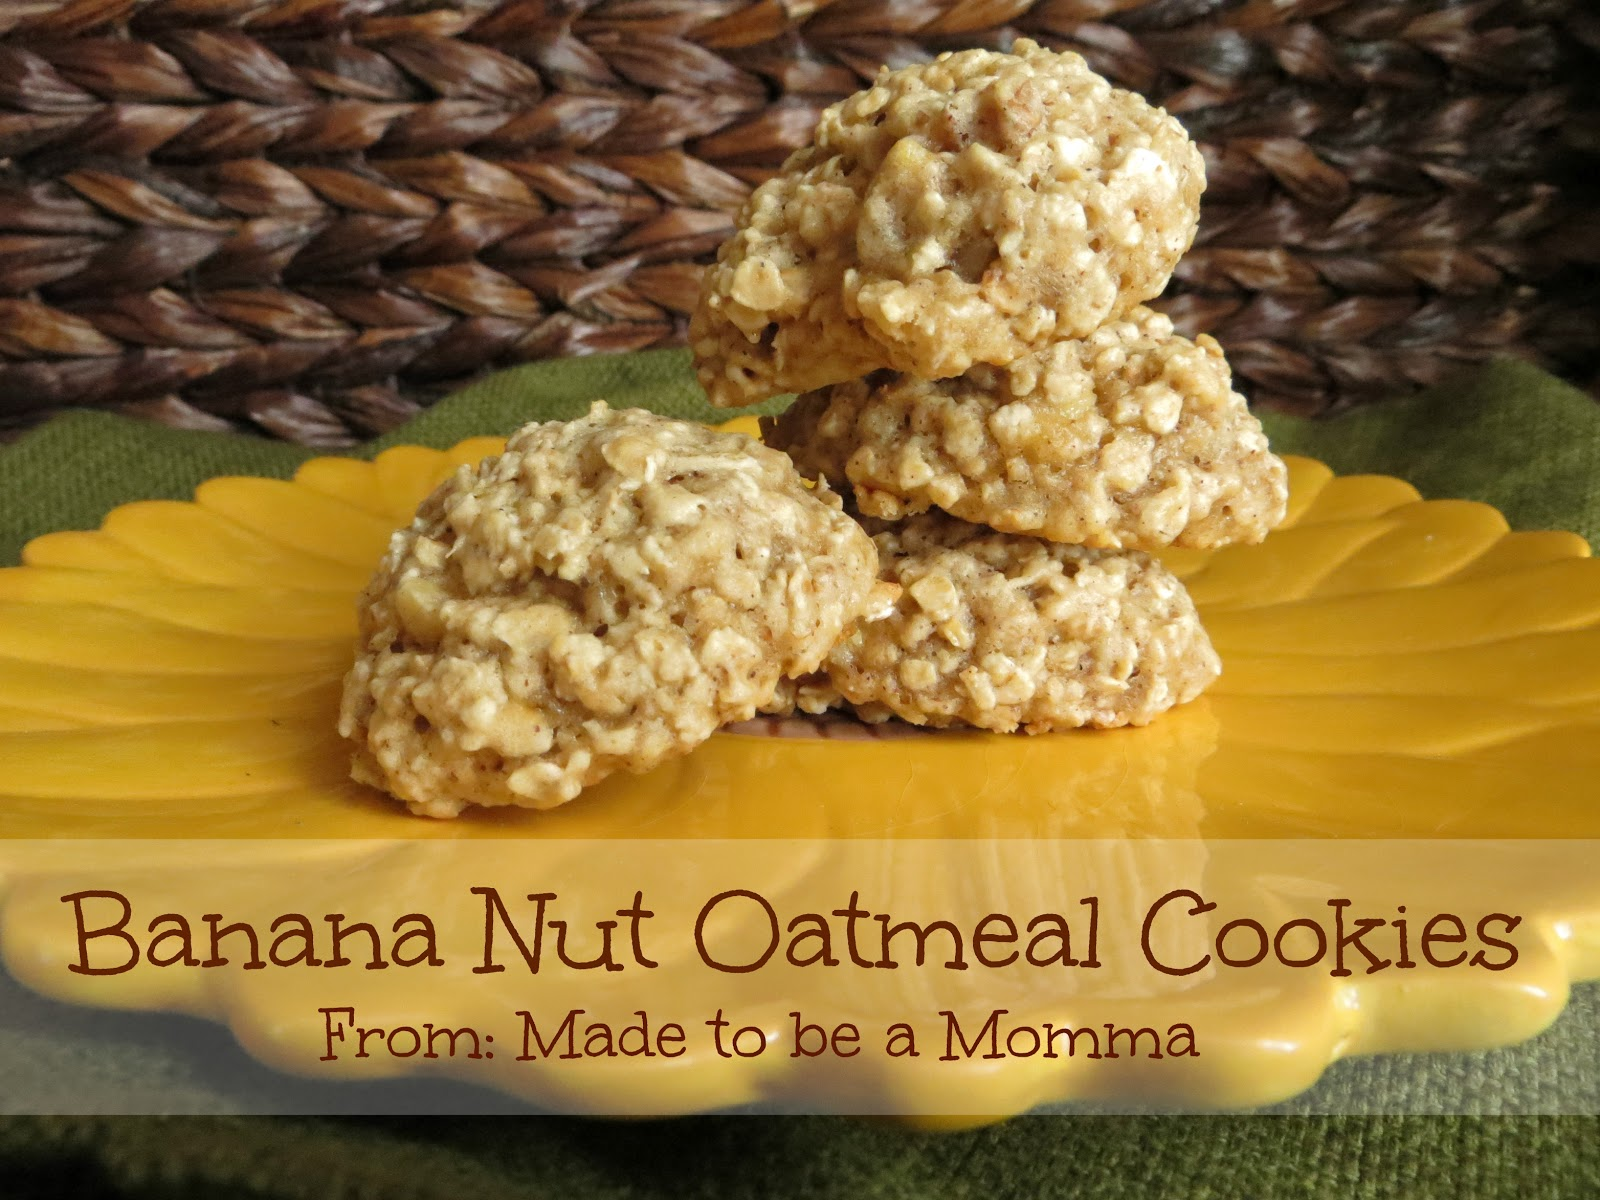 Banana Nut Oatmeal Cookies - Made To Be A Momma